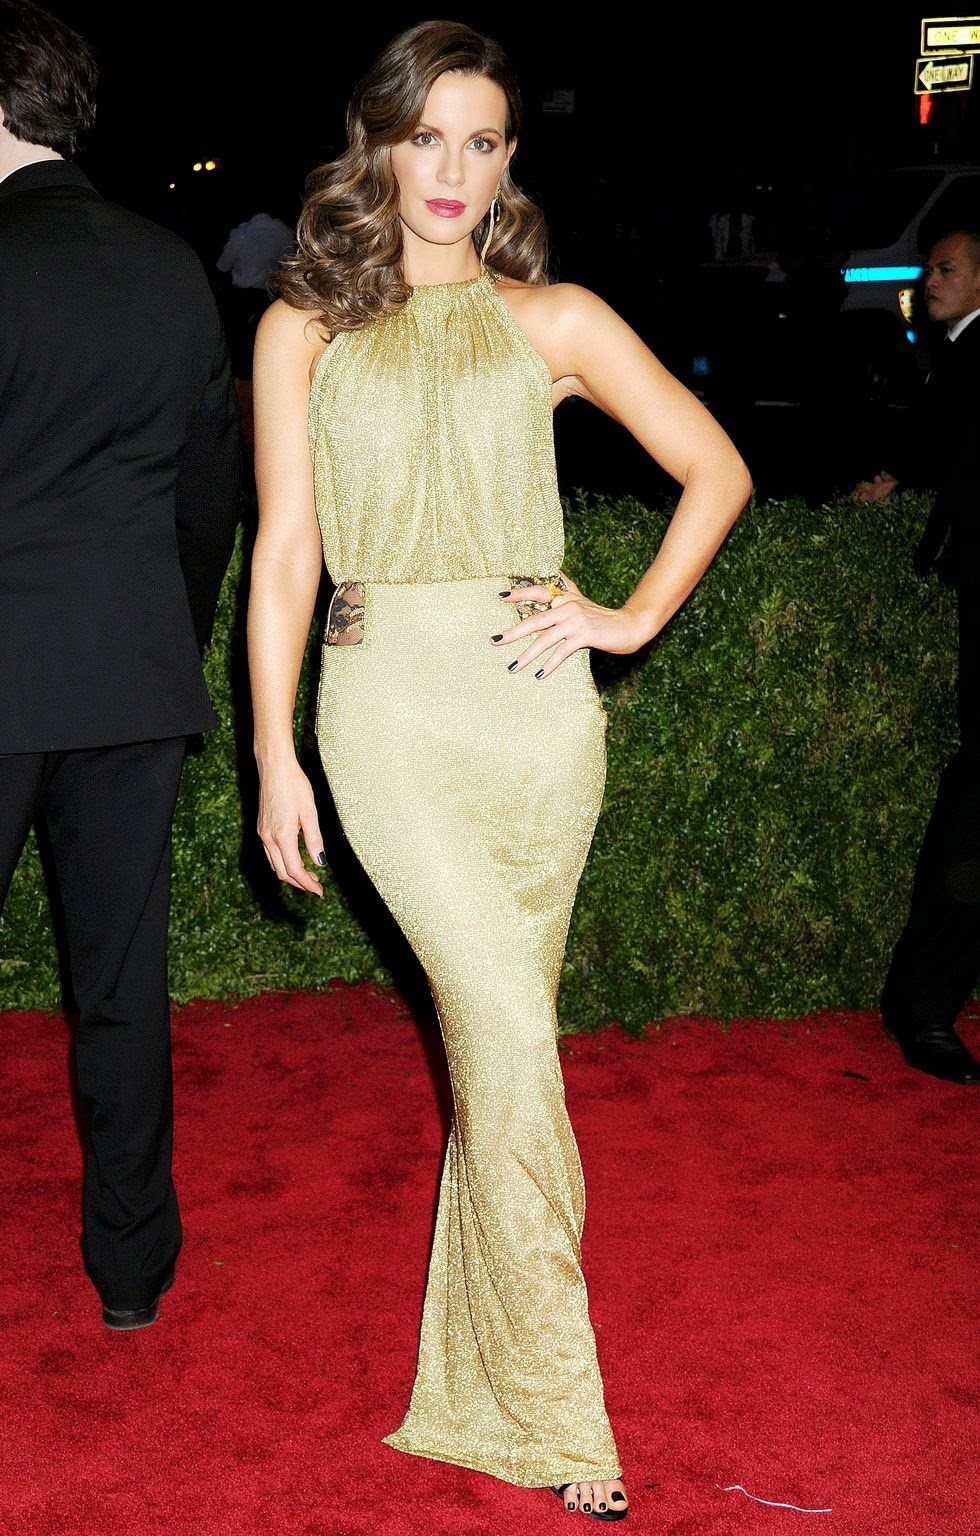 Kate Beckinsale shimmers in a slinky gold gown at the 2015 Met Gala in NYC